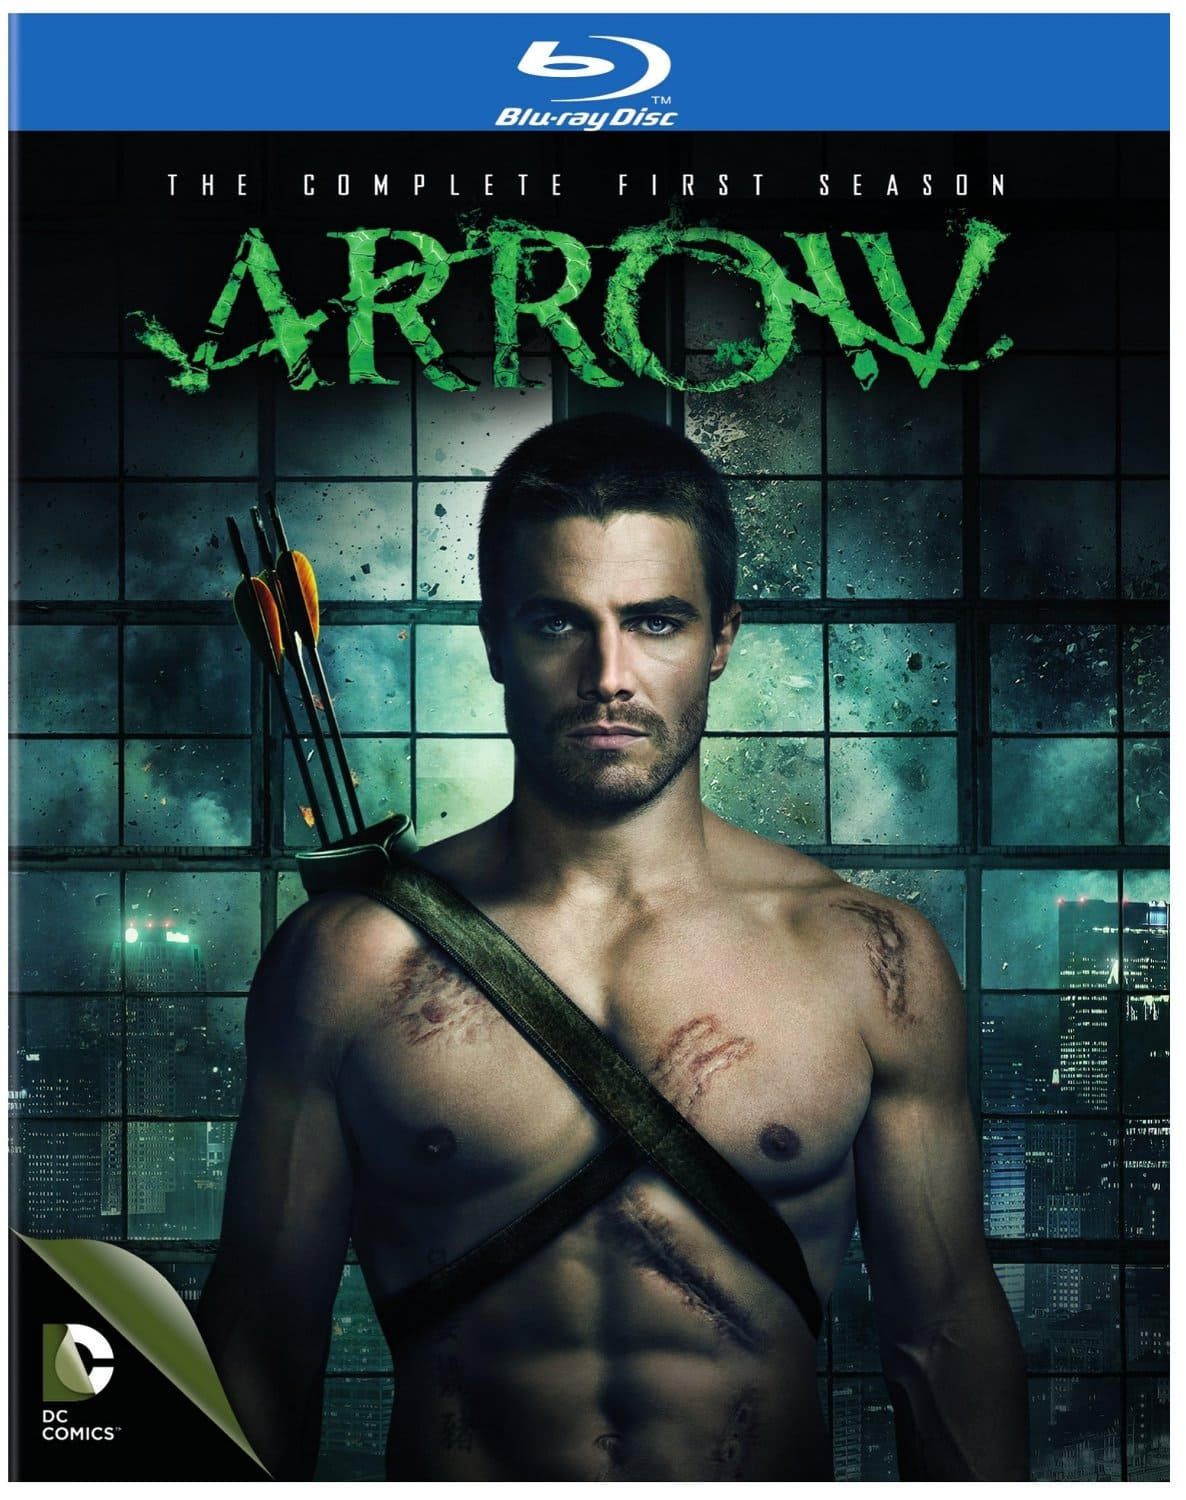 Arrow: The Complete First Season (Blu-Ray) $9.99 via Amazon or Best Buy